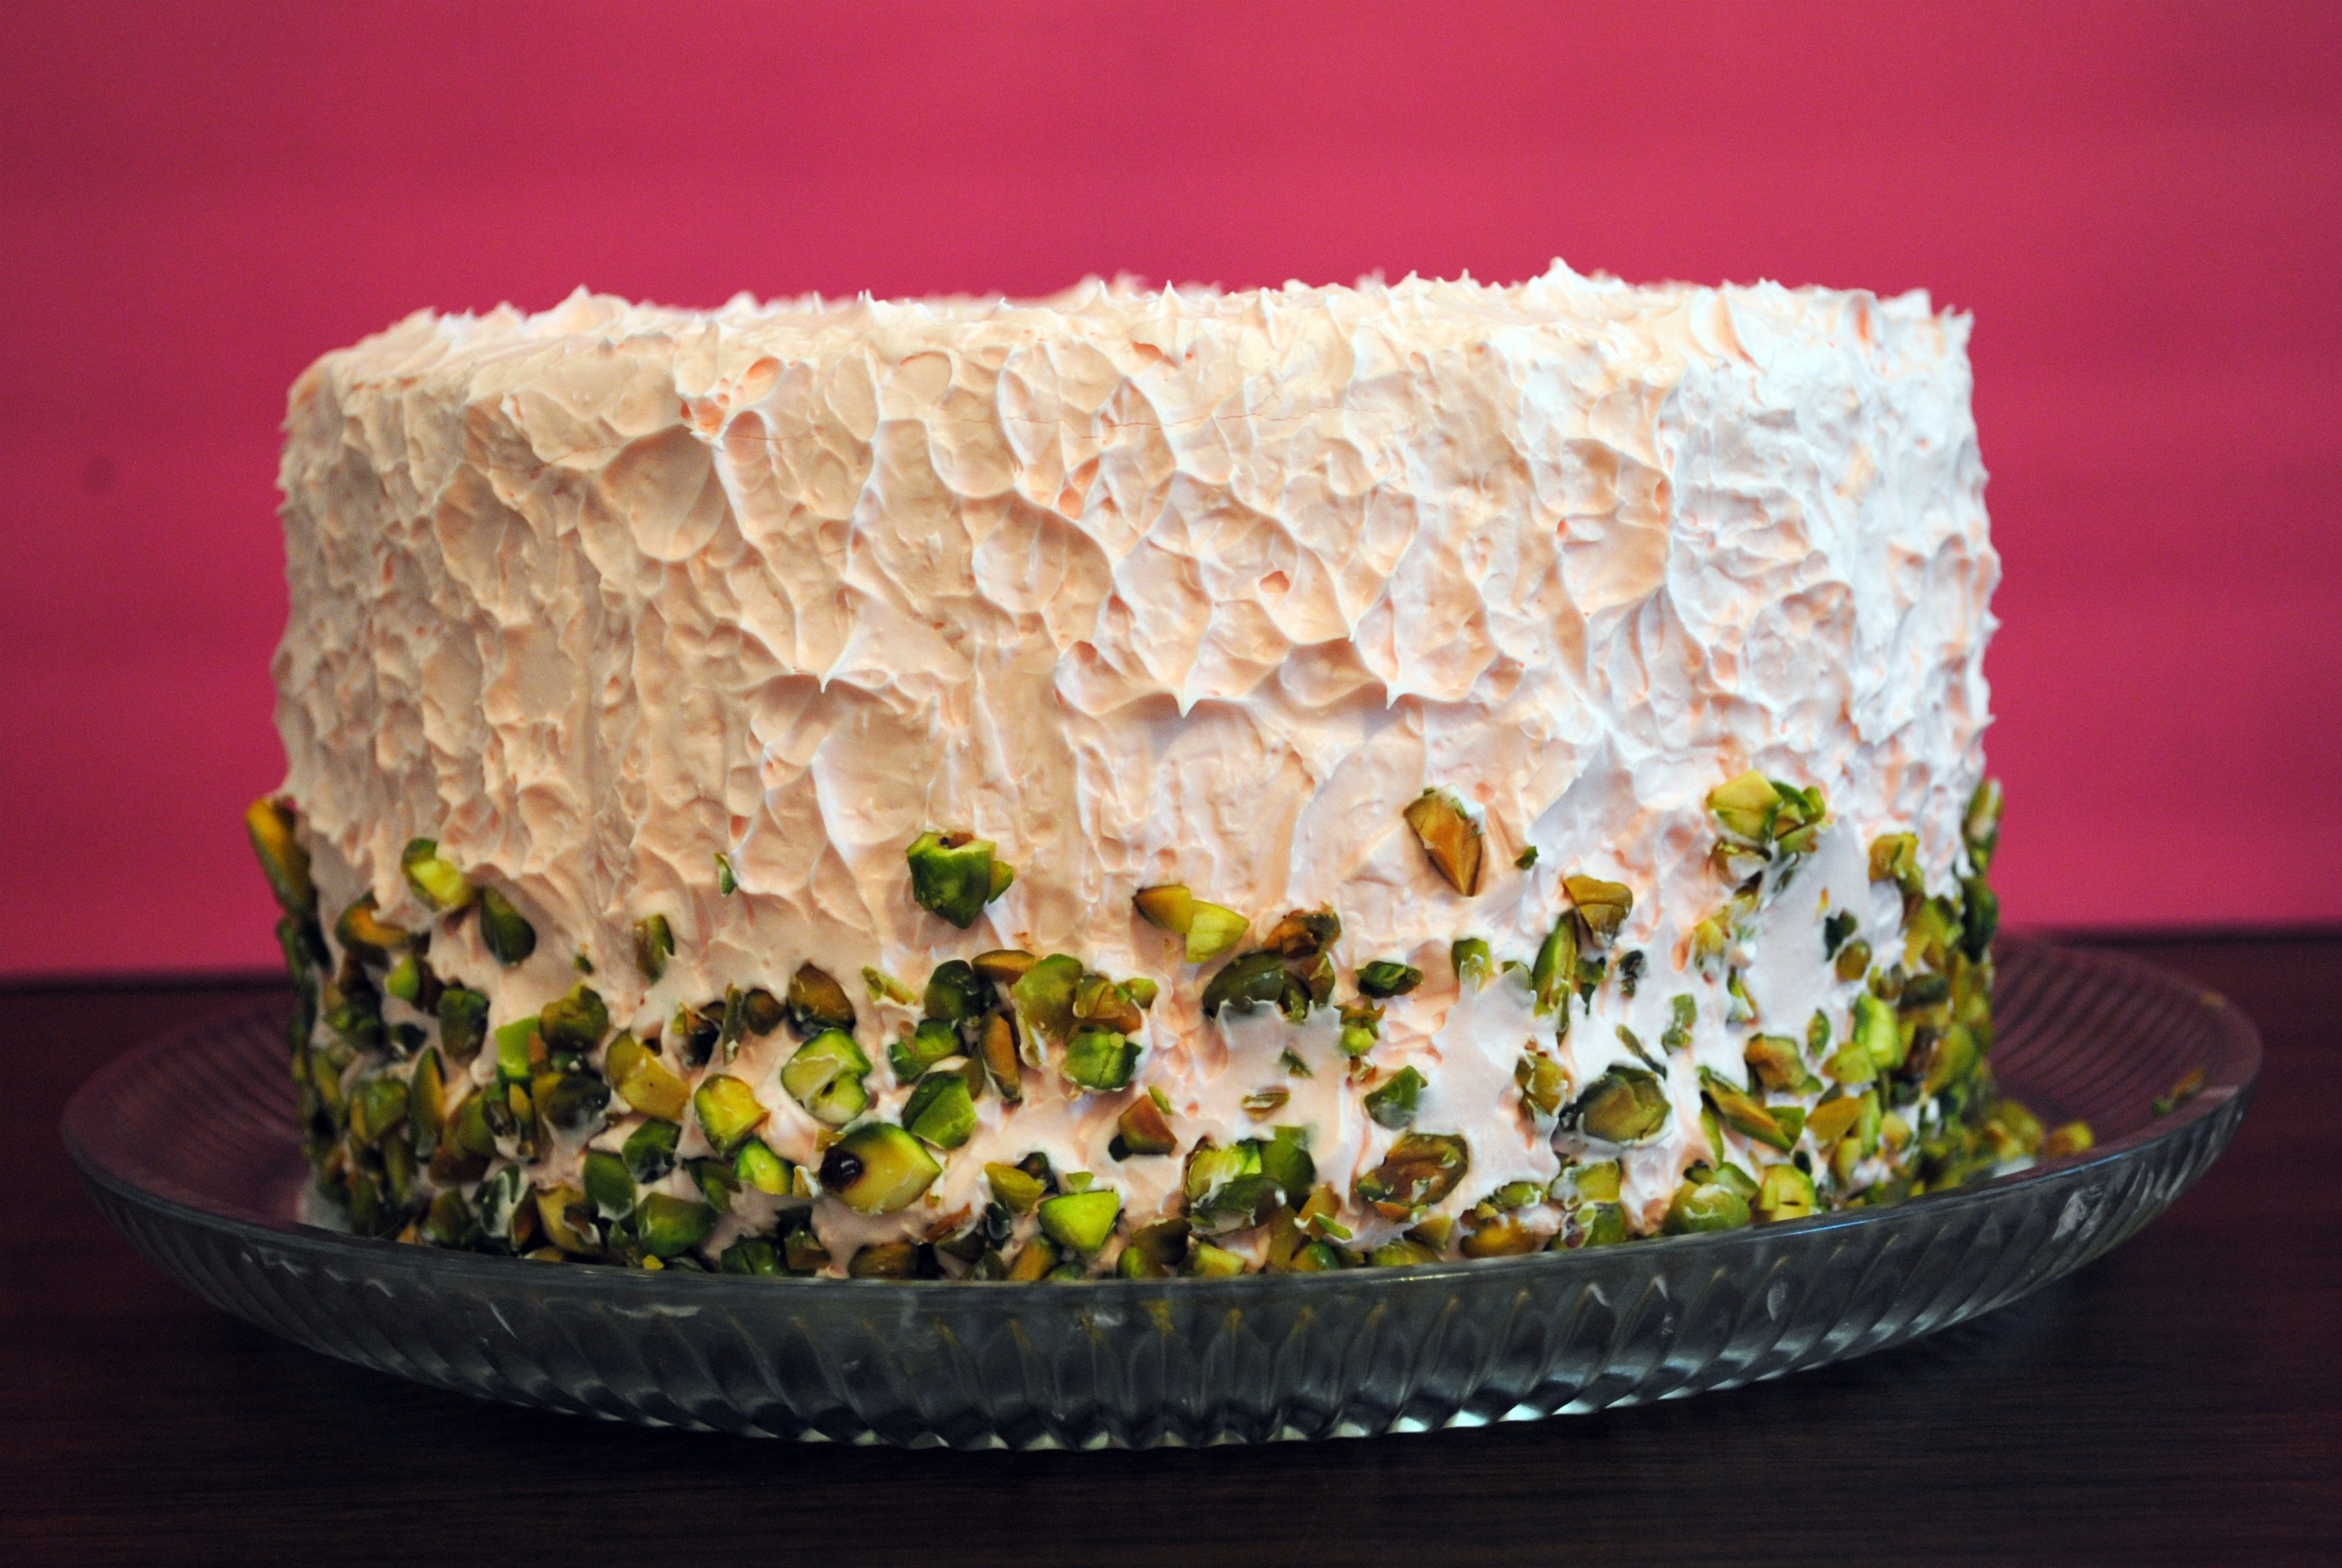 Pistachio Layer Cake From Scratch